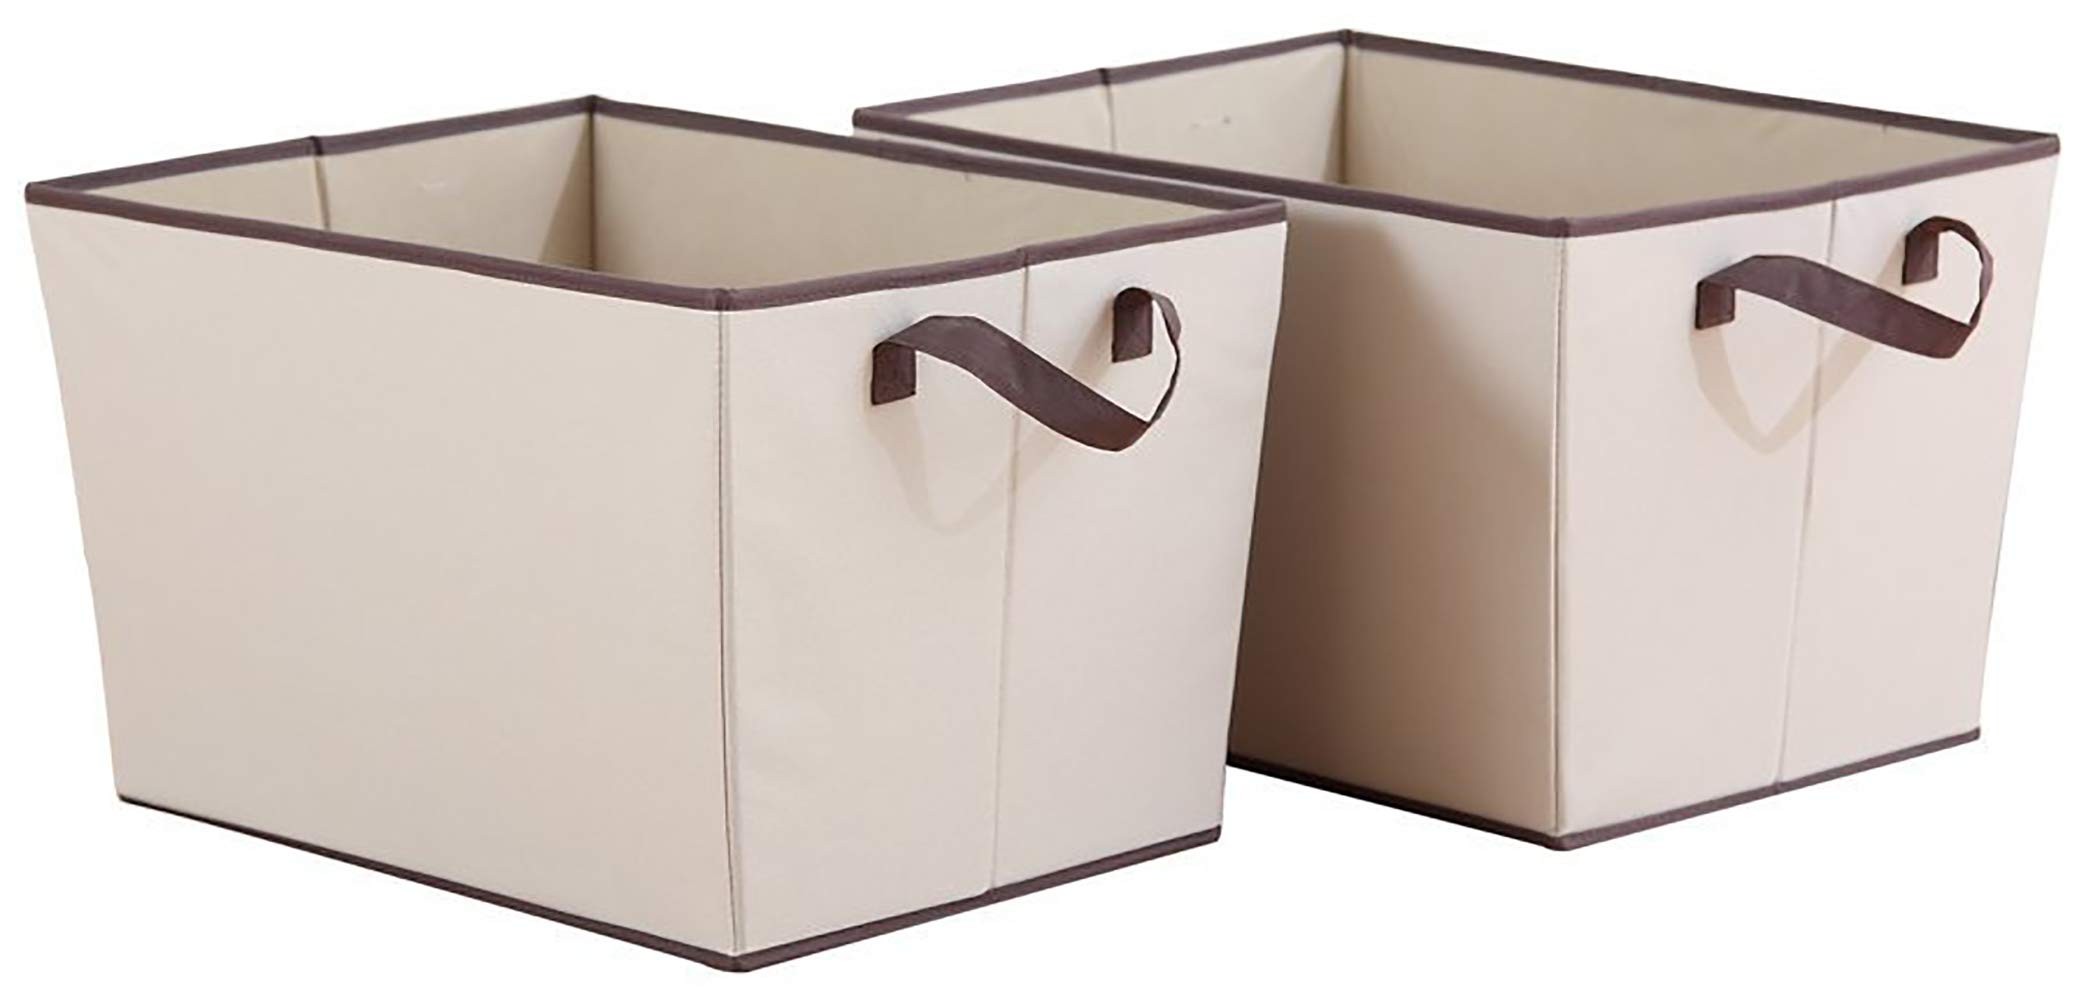 StorageManiac Foldable Open Polyester Canvas Storage Bin Box with Two Handles, Pack of 2, XL